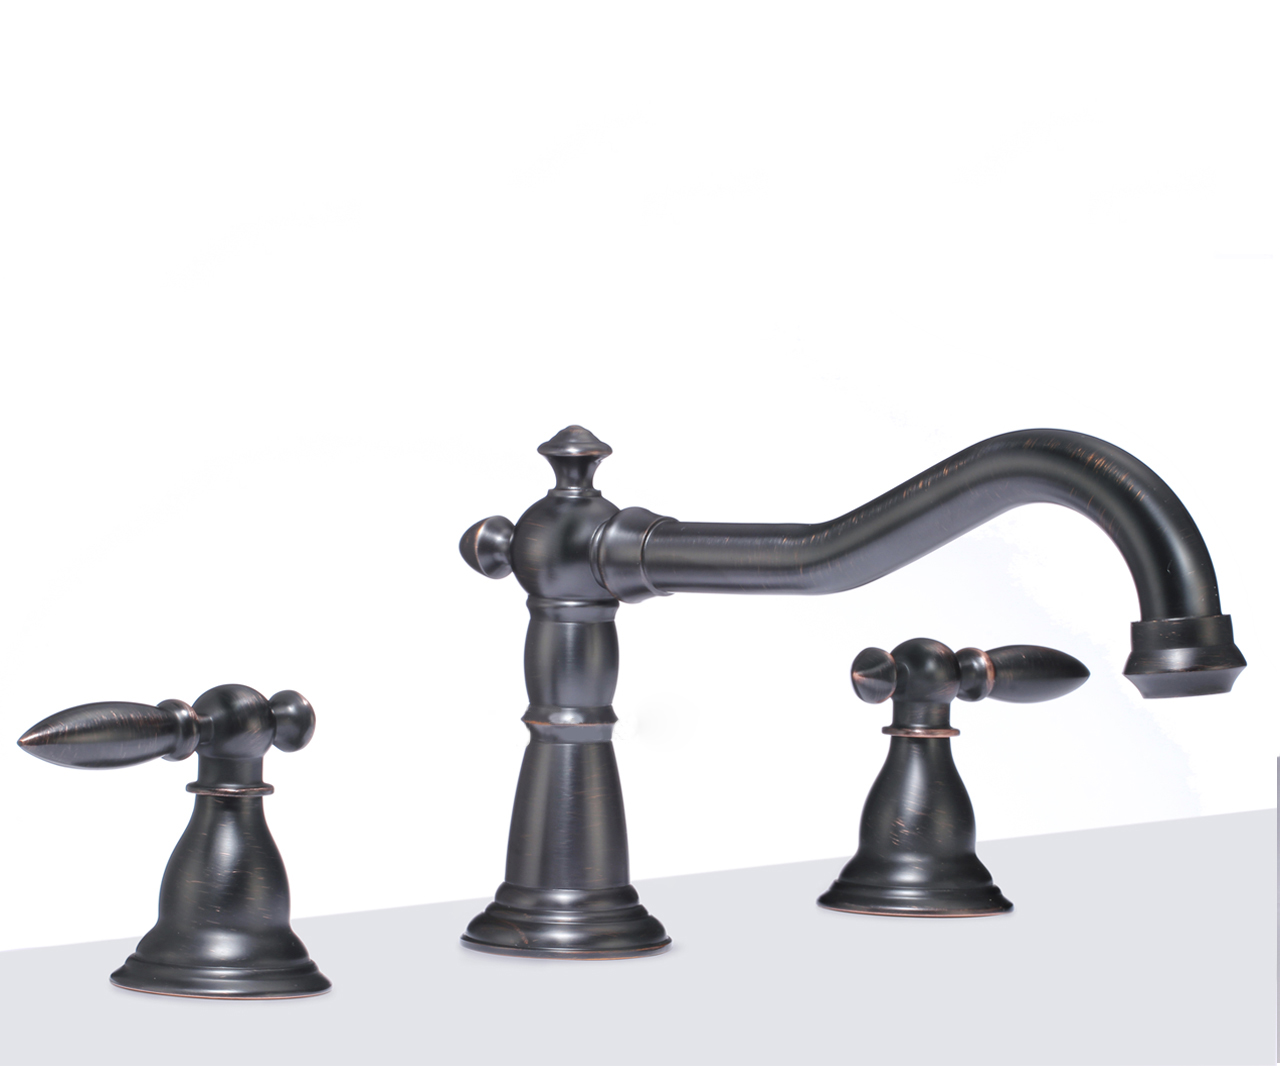 Shop Rome Dual Handle Solid Brass Bathroom Sink Faucet At Bathselect